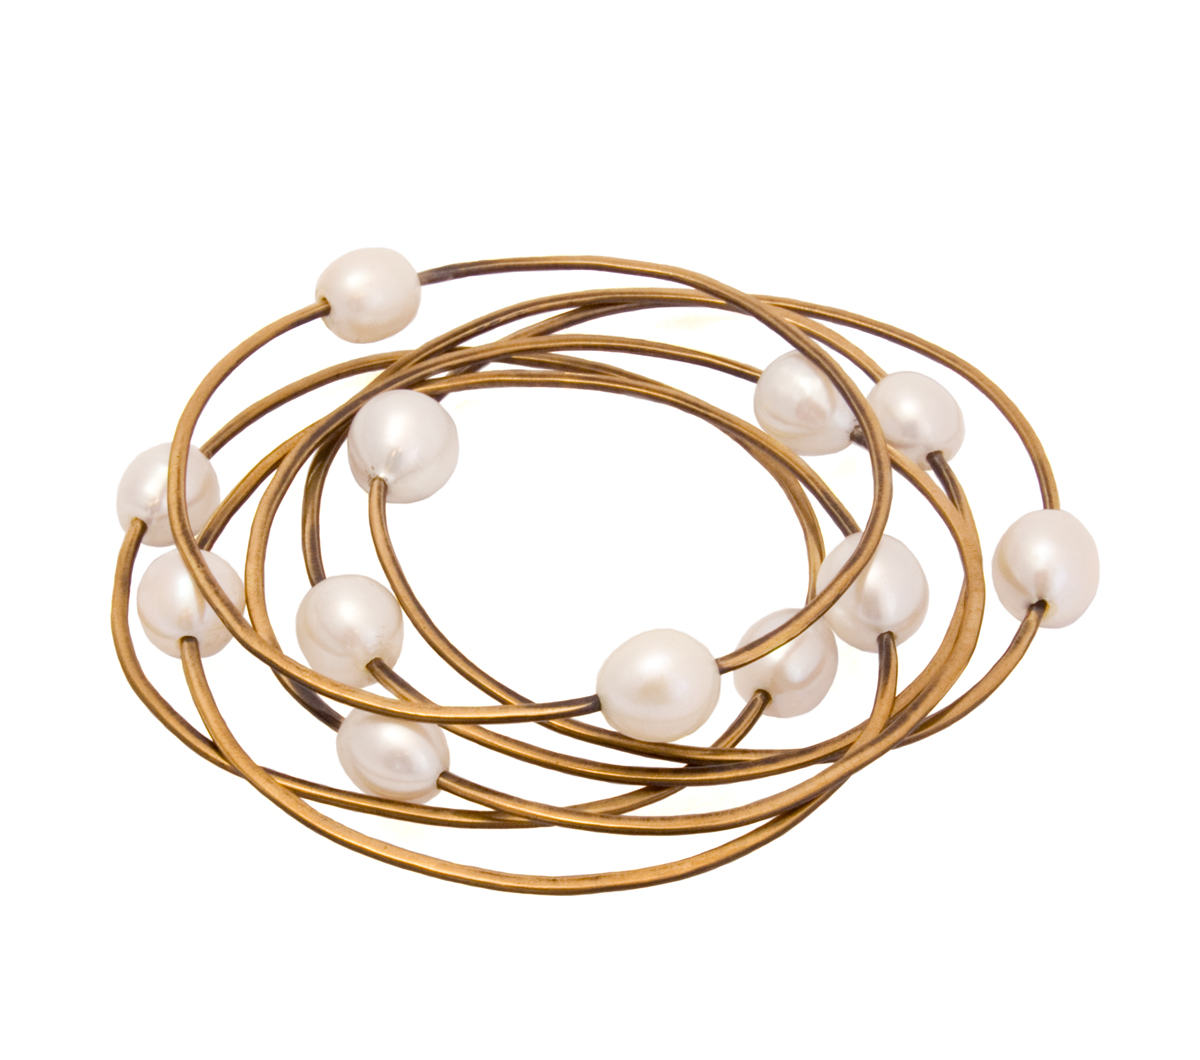 Margaret Ellis Jewelry Set of 6 with 2 Pearl Bangle